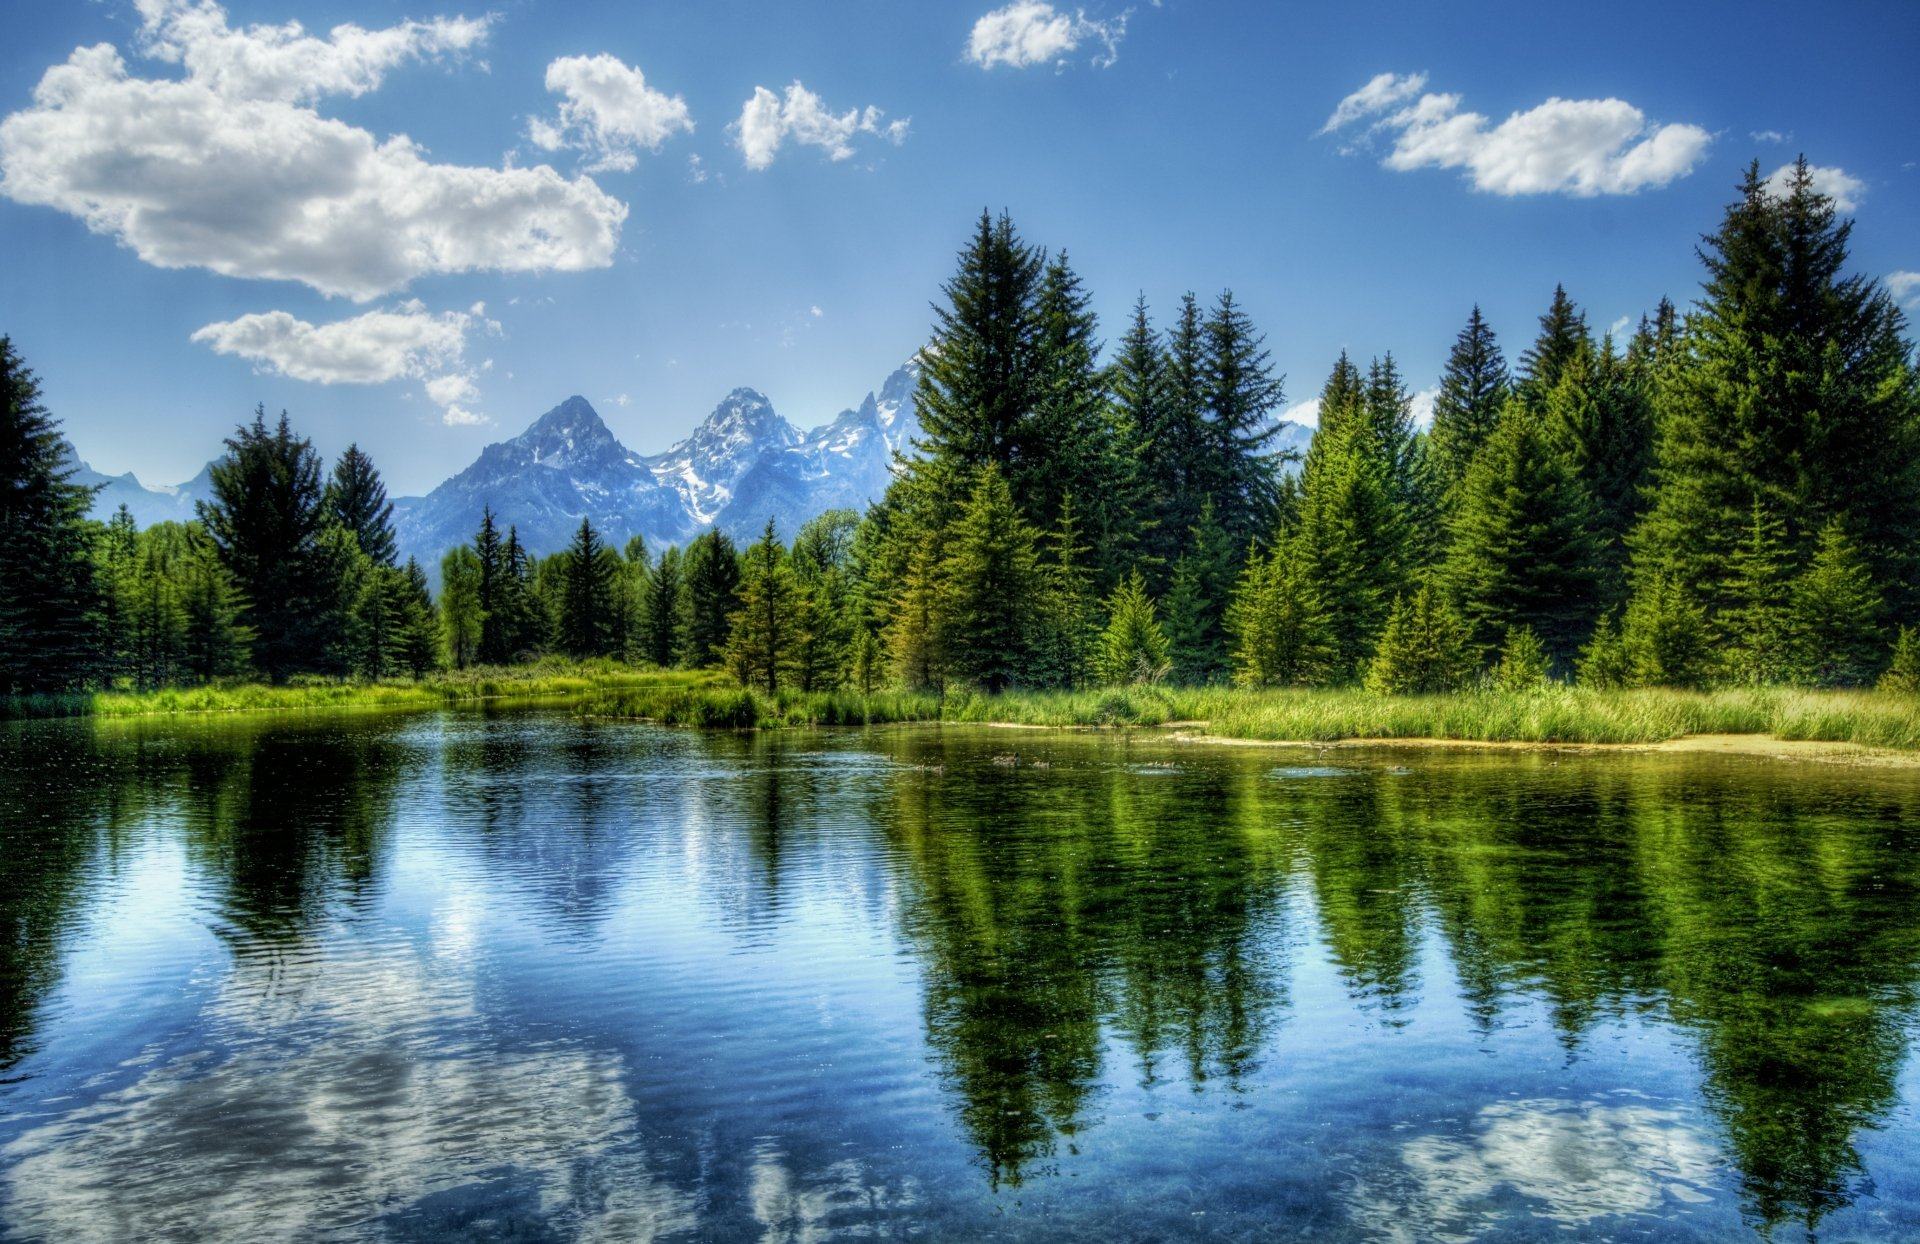 Earth - Landscape  Tree Reflection Lake Water Cloud Mountain Yellowstone Wyoming The Teton Range Grand Teton National Park Earth Wallpaper